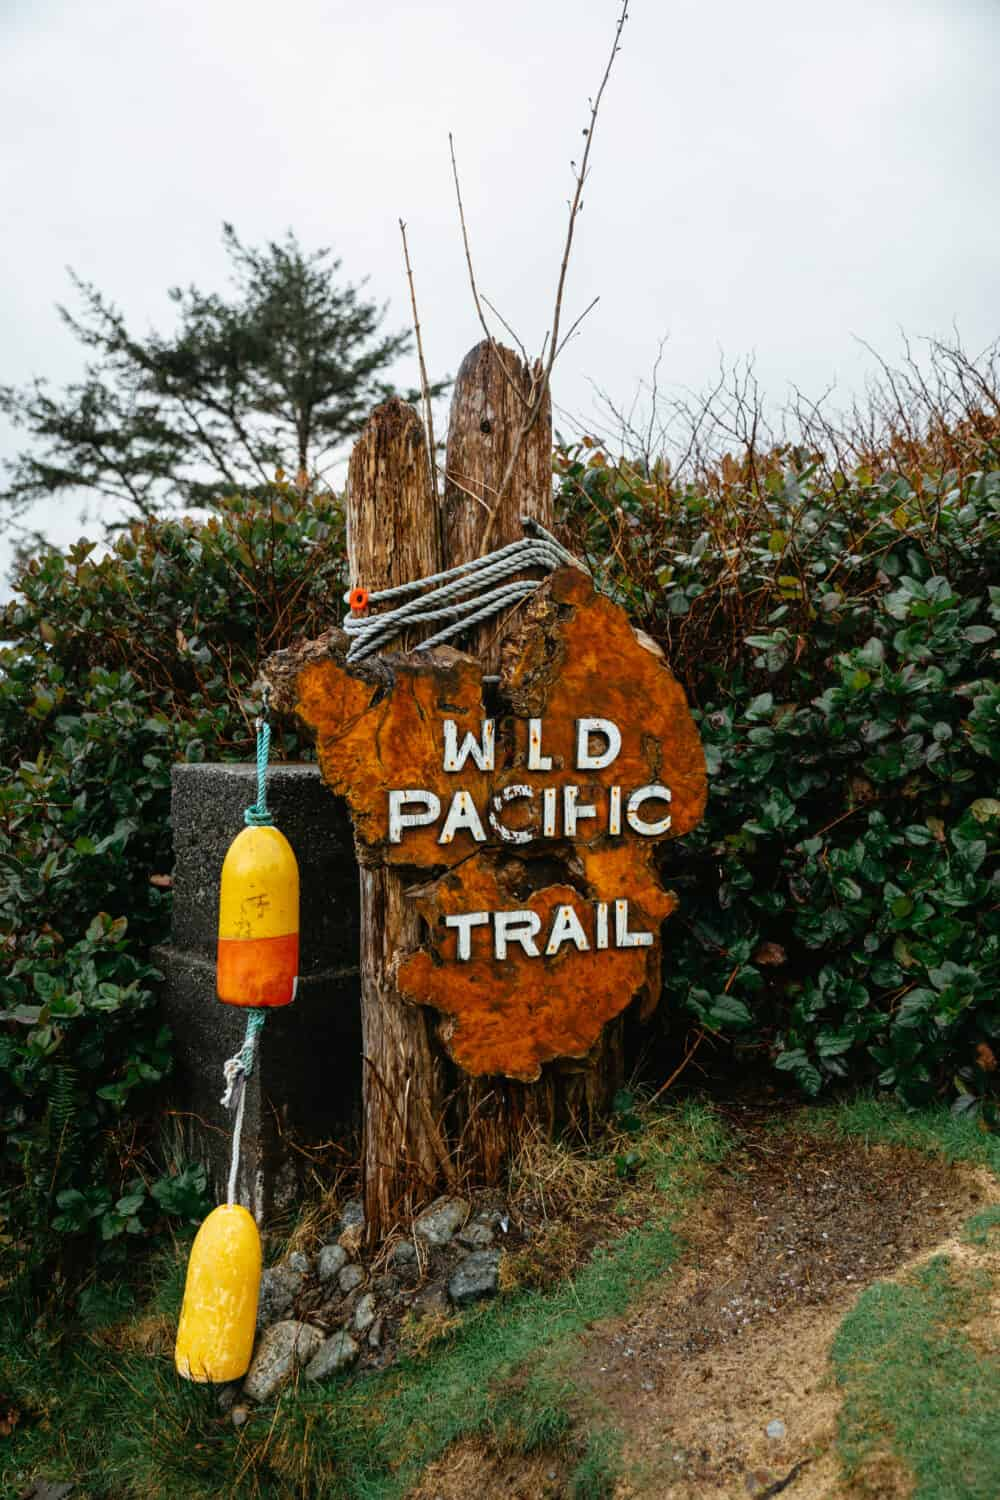 Wild Pacific Trail Sign - Ucluelet, Vancouver Island